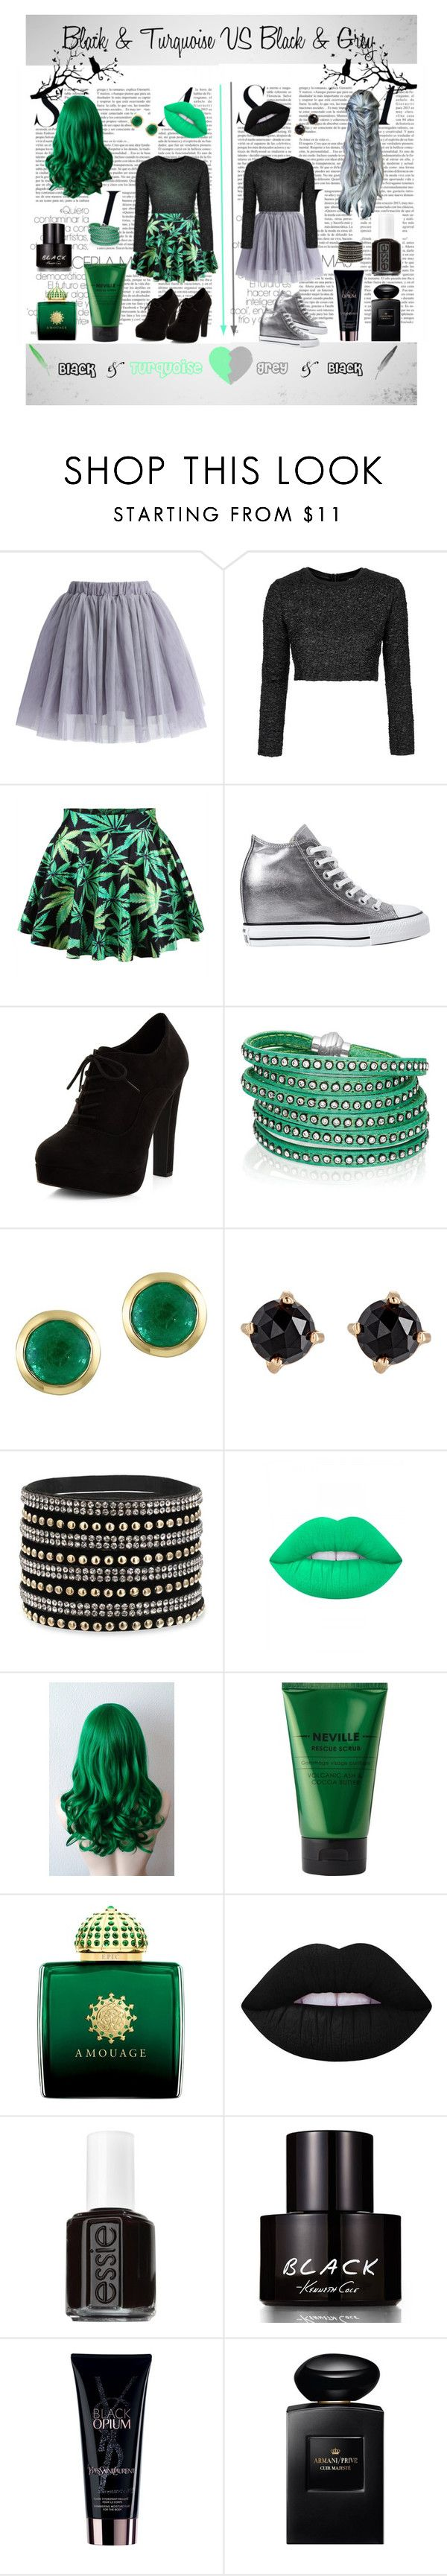 """""""Black & turquoise VS grey & black"""" by ana-petrasuc on Polyvore featuring Chicwish, Topshop, Converse, New Look, Sif Jakobs Jewellery, Effy Jewelry, Irene Neuwirth, Lime Crime, Neville and AMOUAGE"""